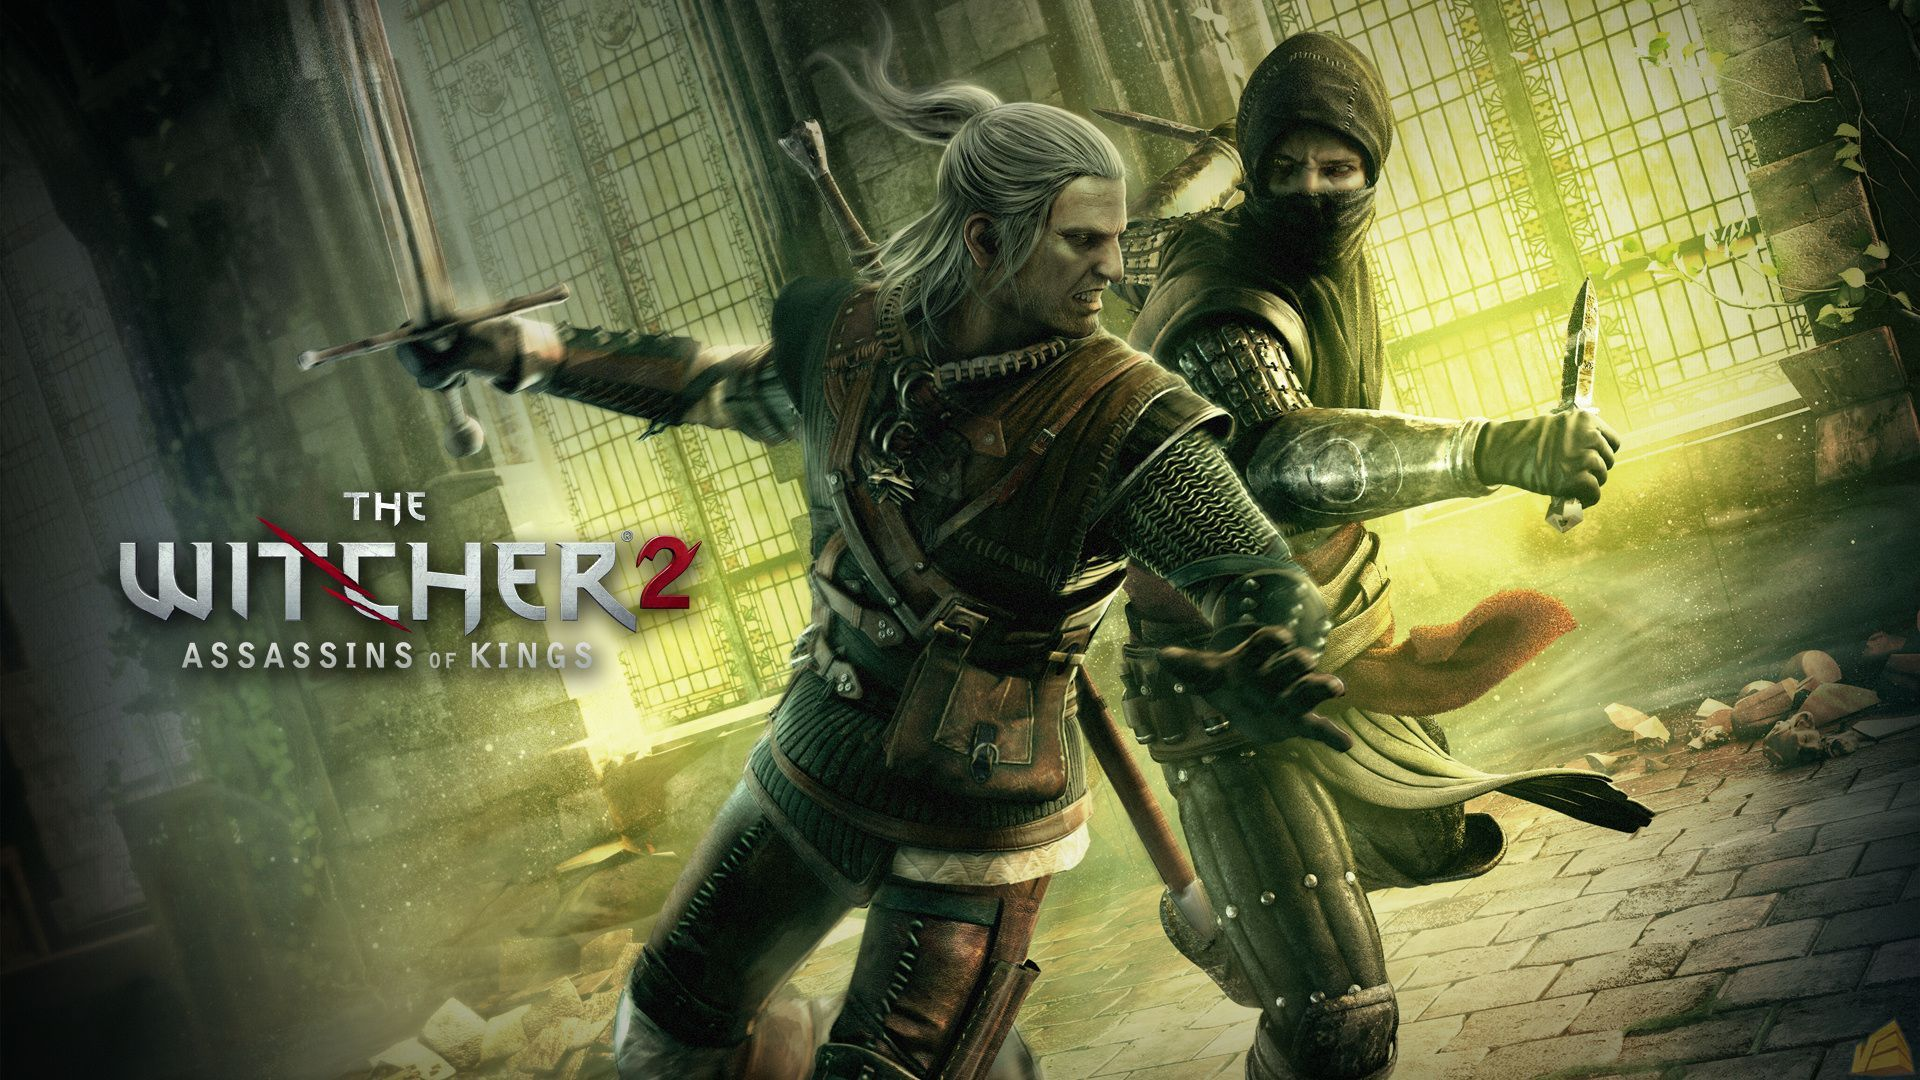 the witcher 2 wallpaper HD